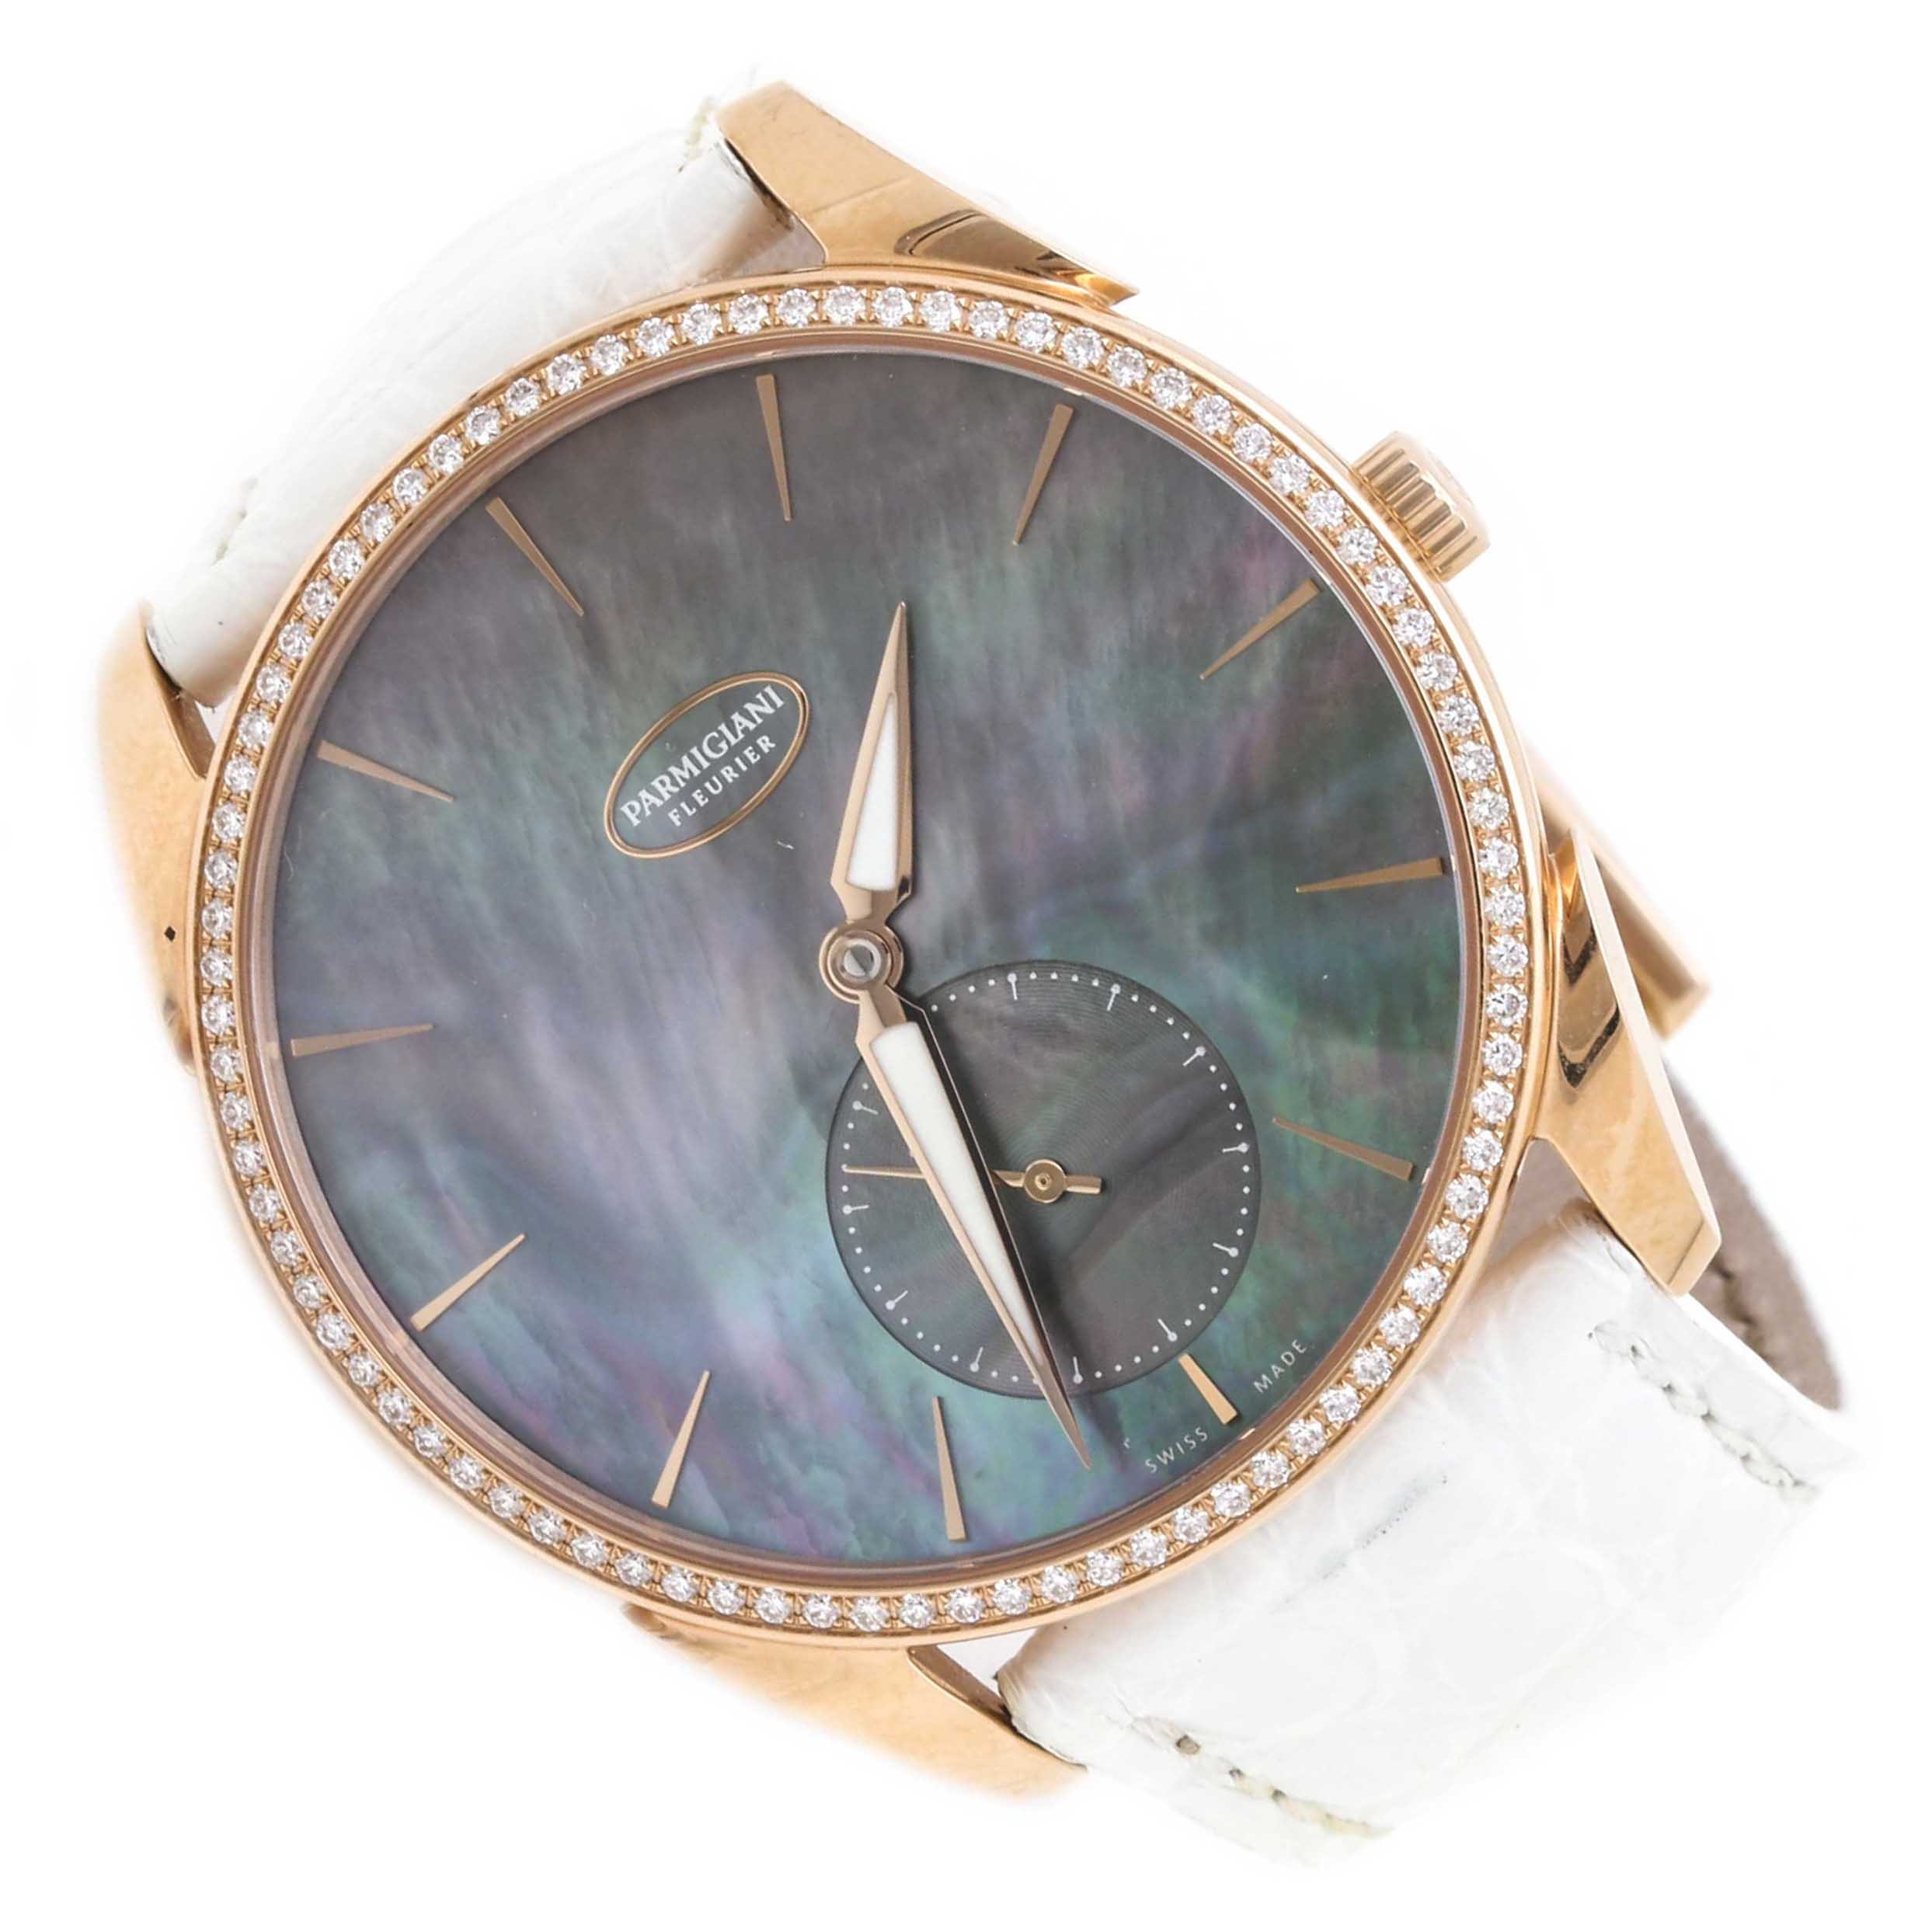 Parmigiani Fleurier Tonda 1950 18K Rose Gold Mother-of-Pearl and Diamond Wristwatch